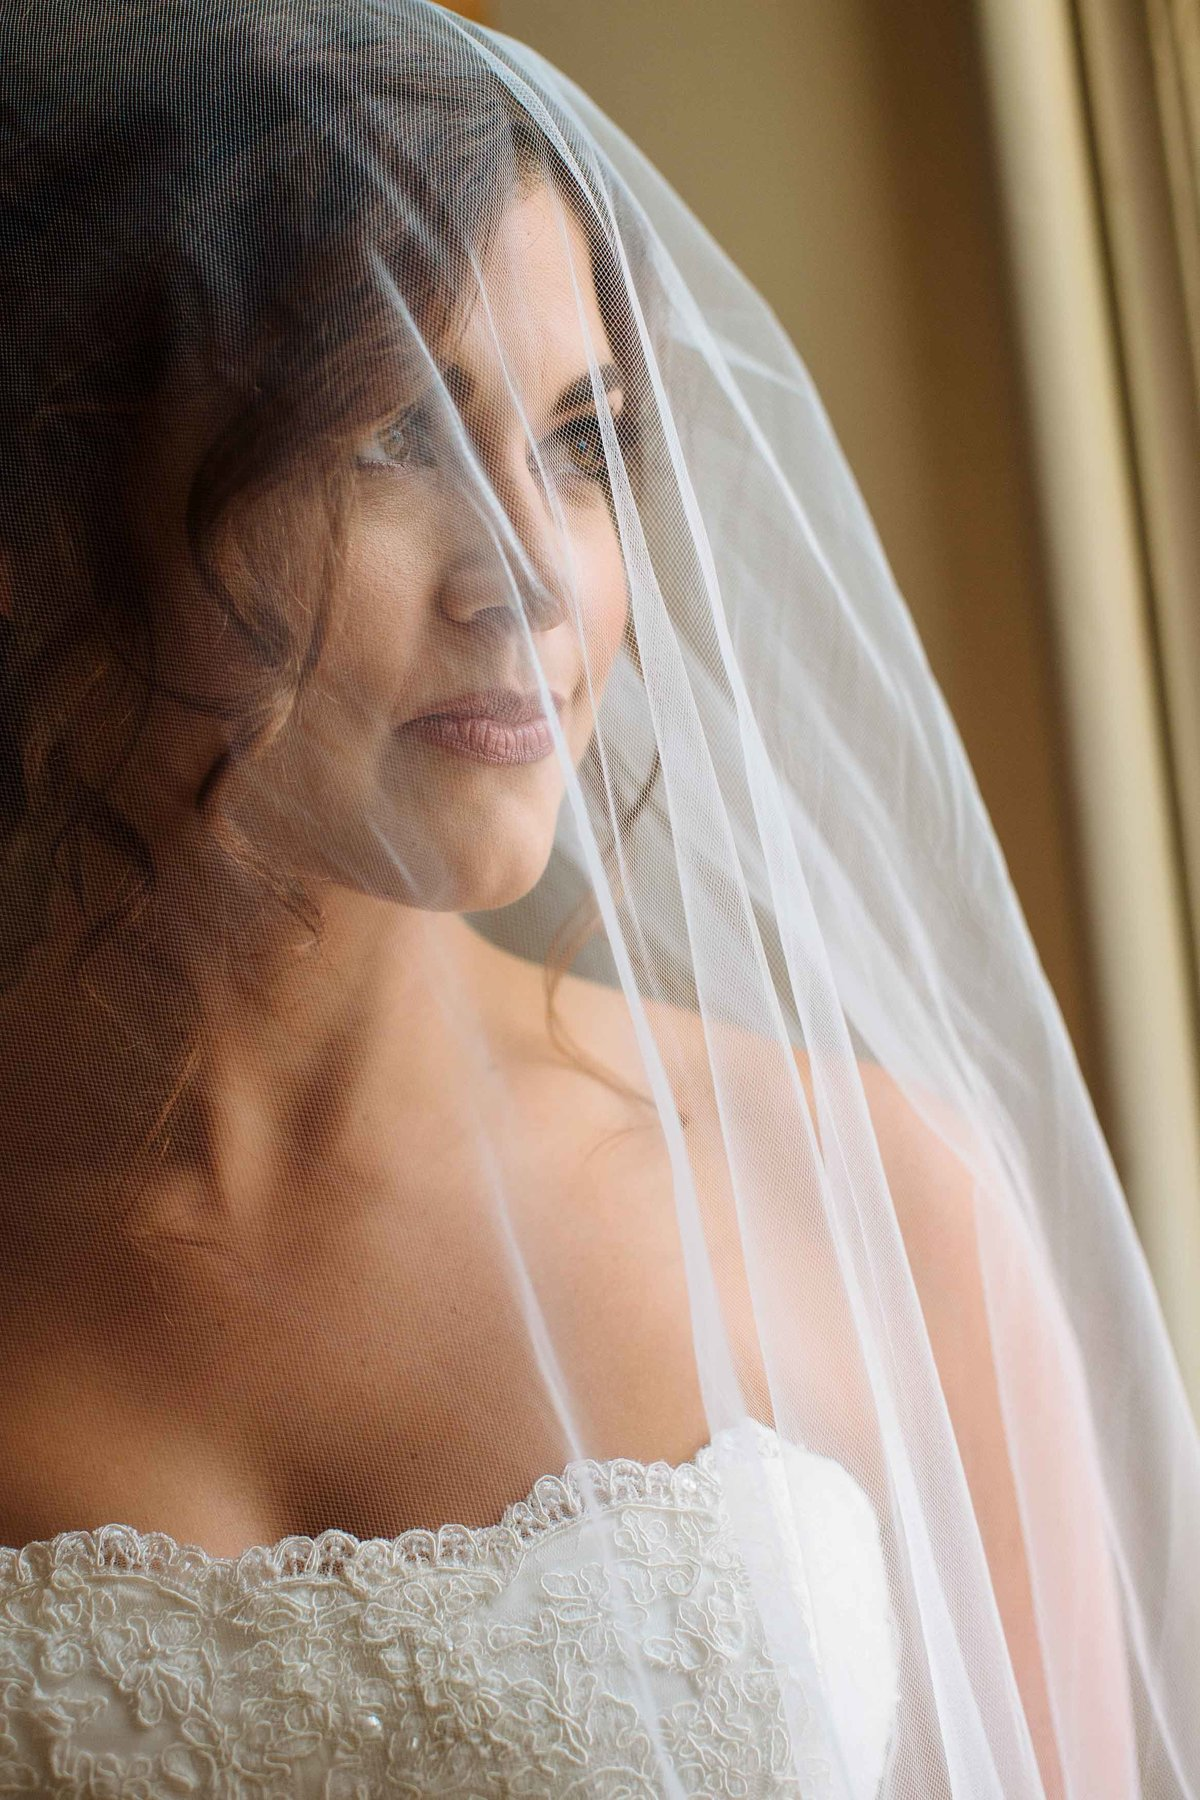 A veil covering a bride as she looks out a window.